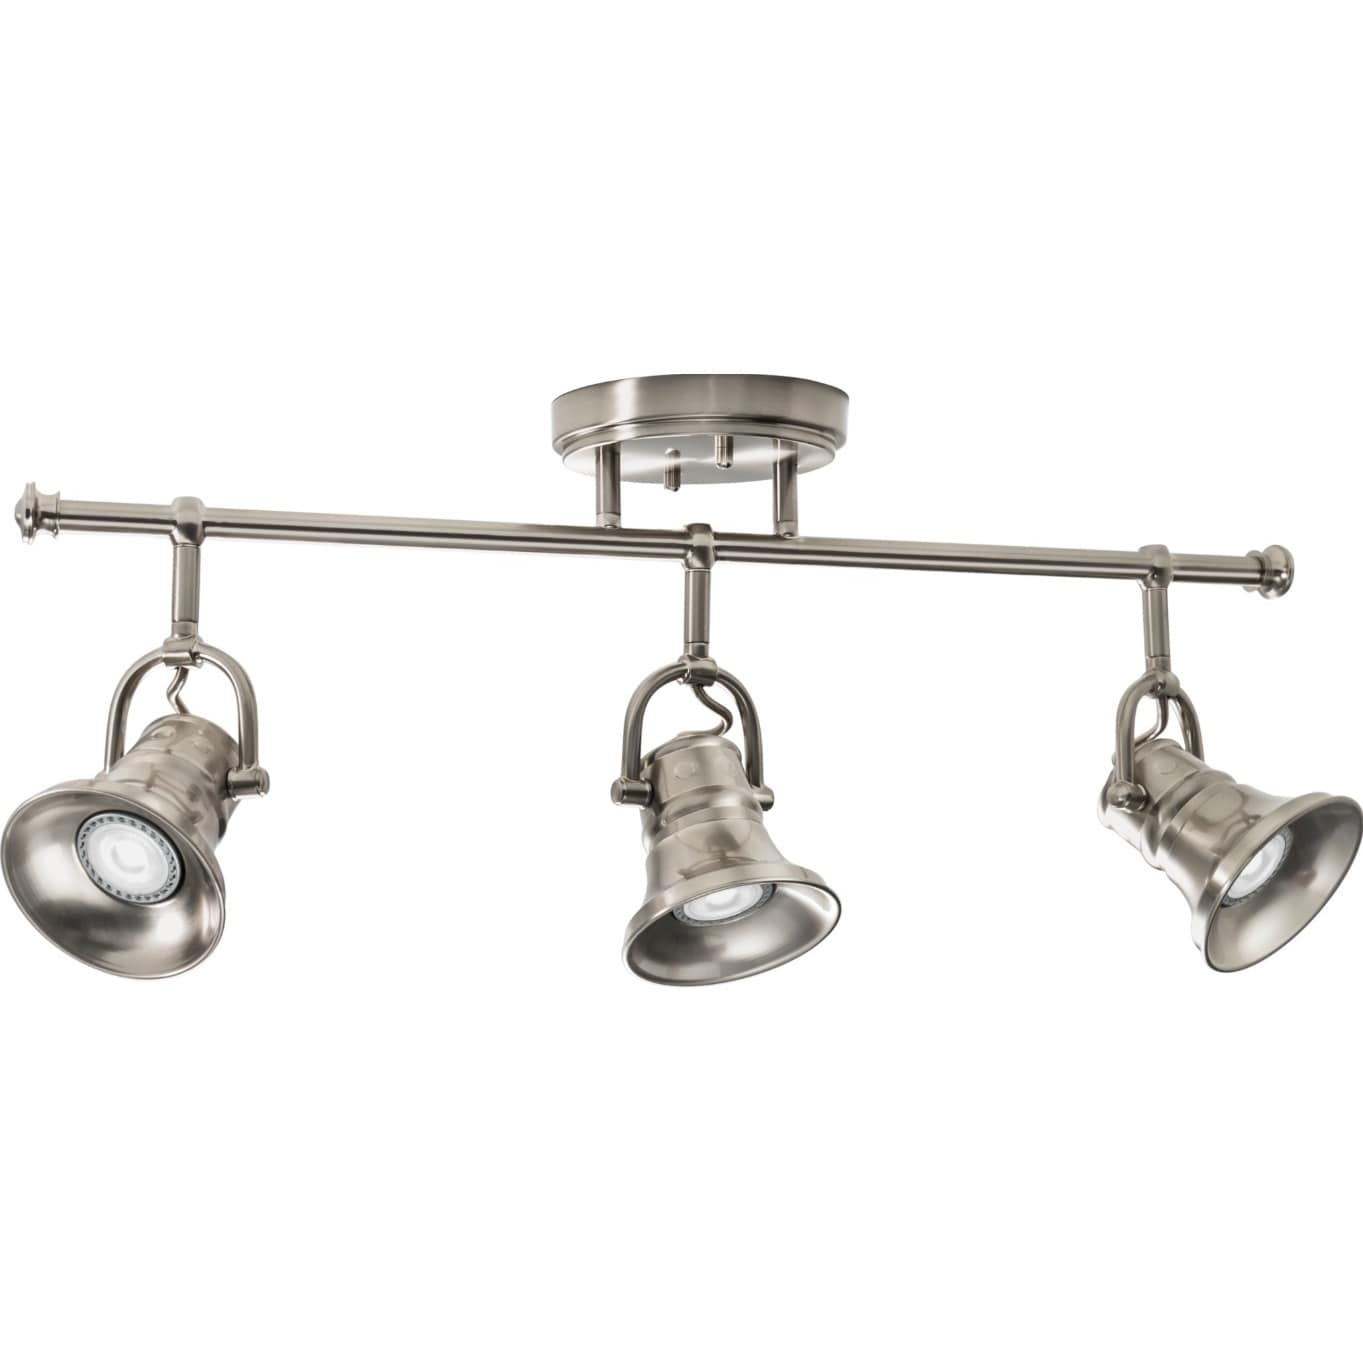 Lithonia Lighting Brushed Nickel Led 3 Head Flare Skirt Fixed Track Light Kit Free Shipping Today 14681688